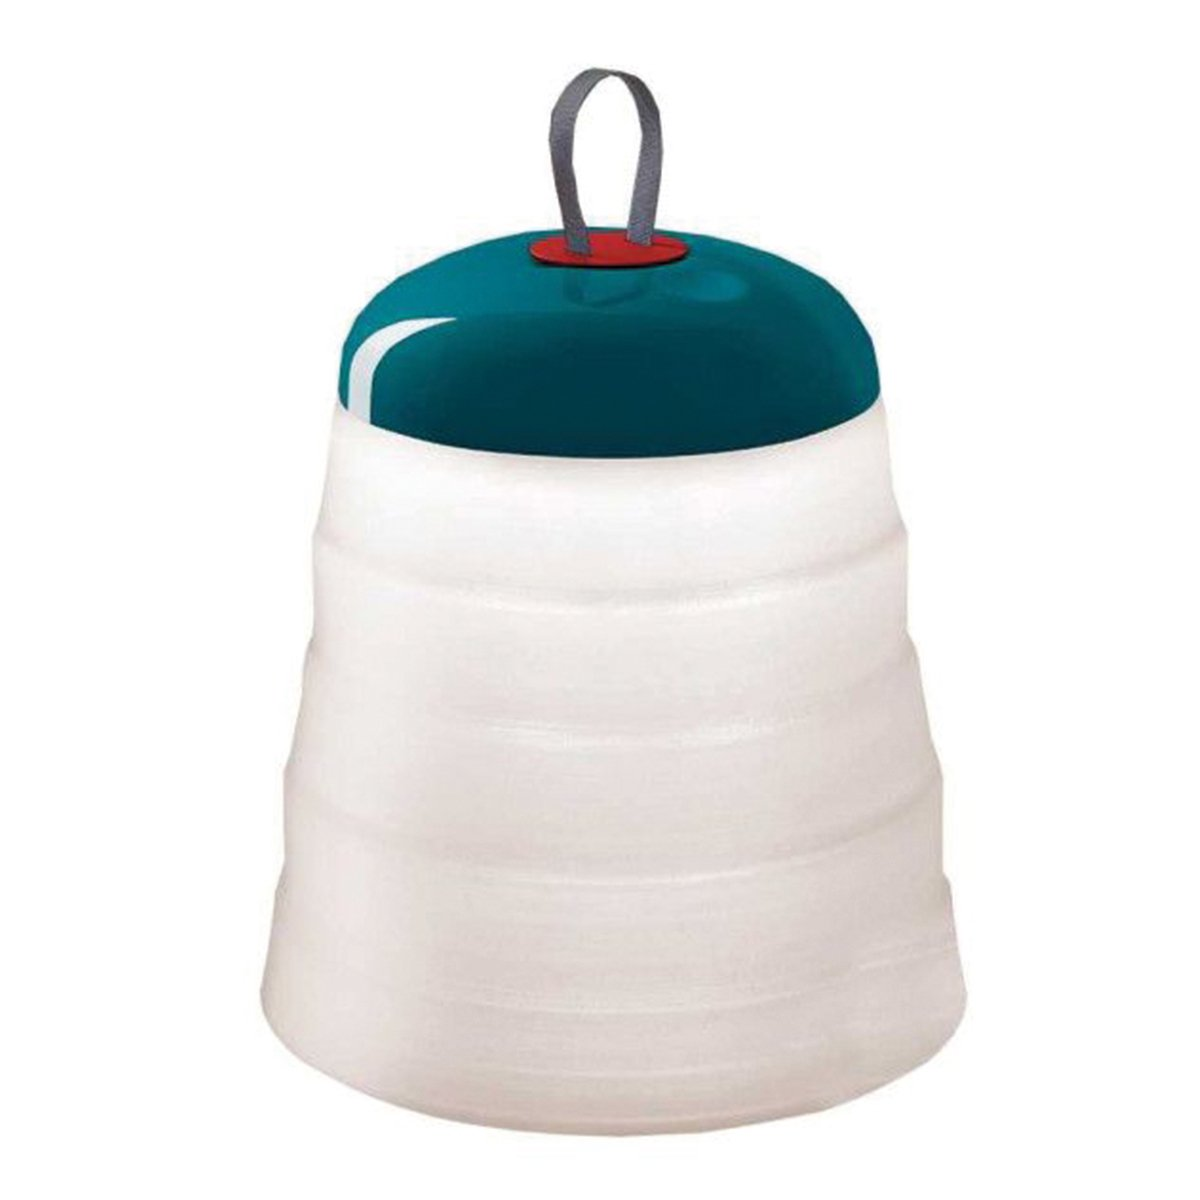 Foscarini Cri Cri Outdoor Lamp Groen - Studio Natural